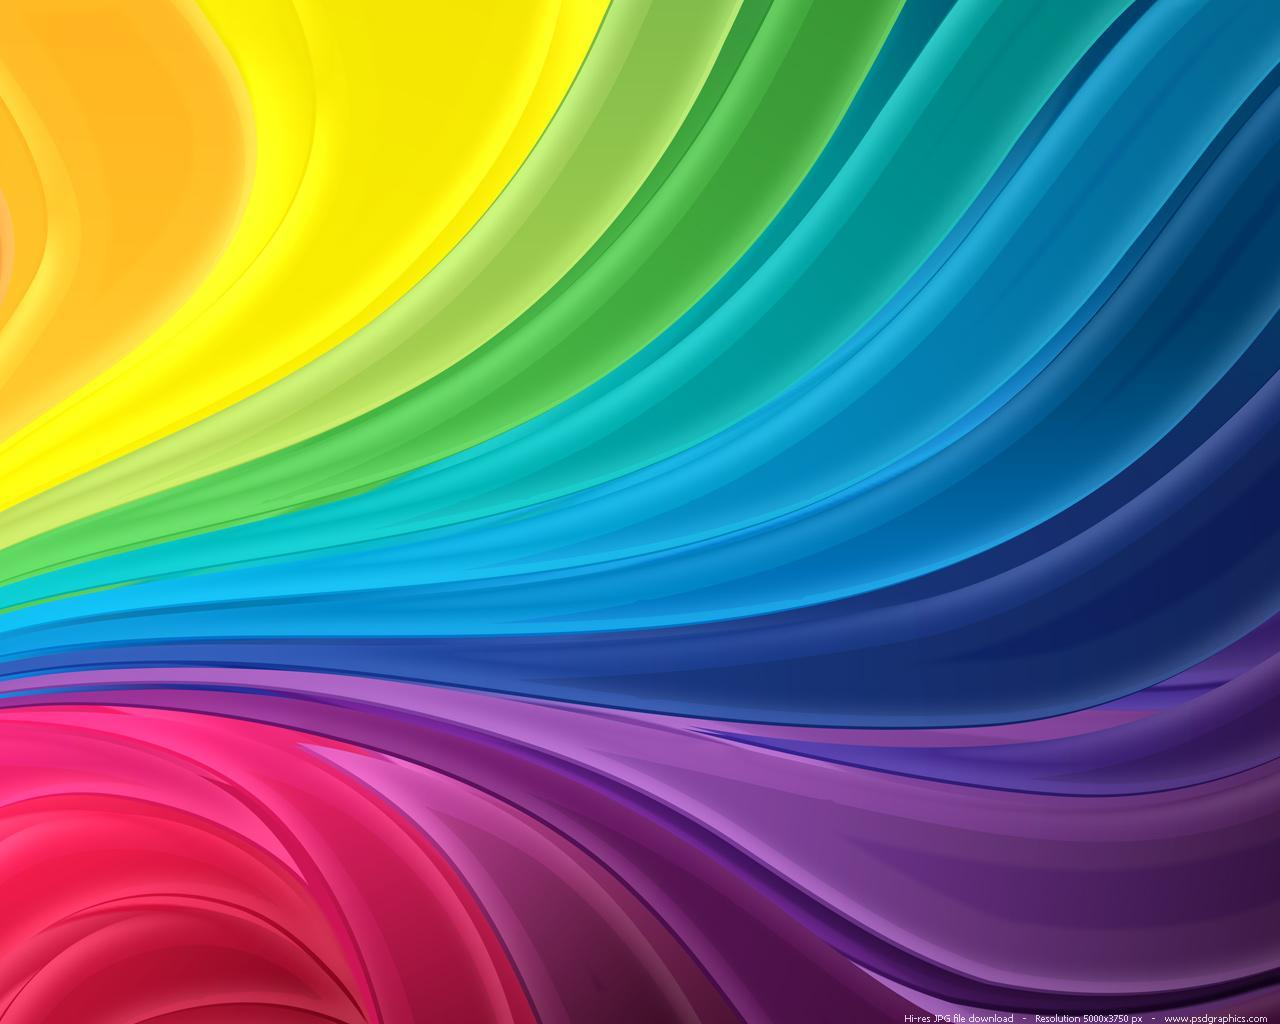 What colour is your spirit?